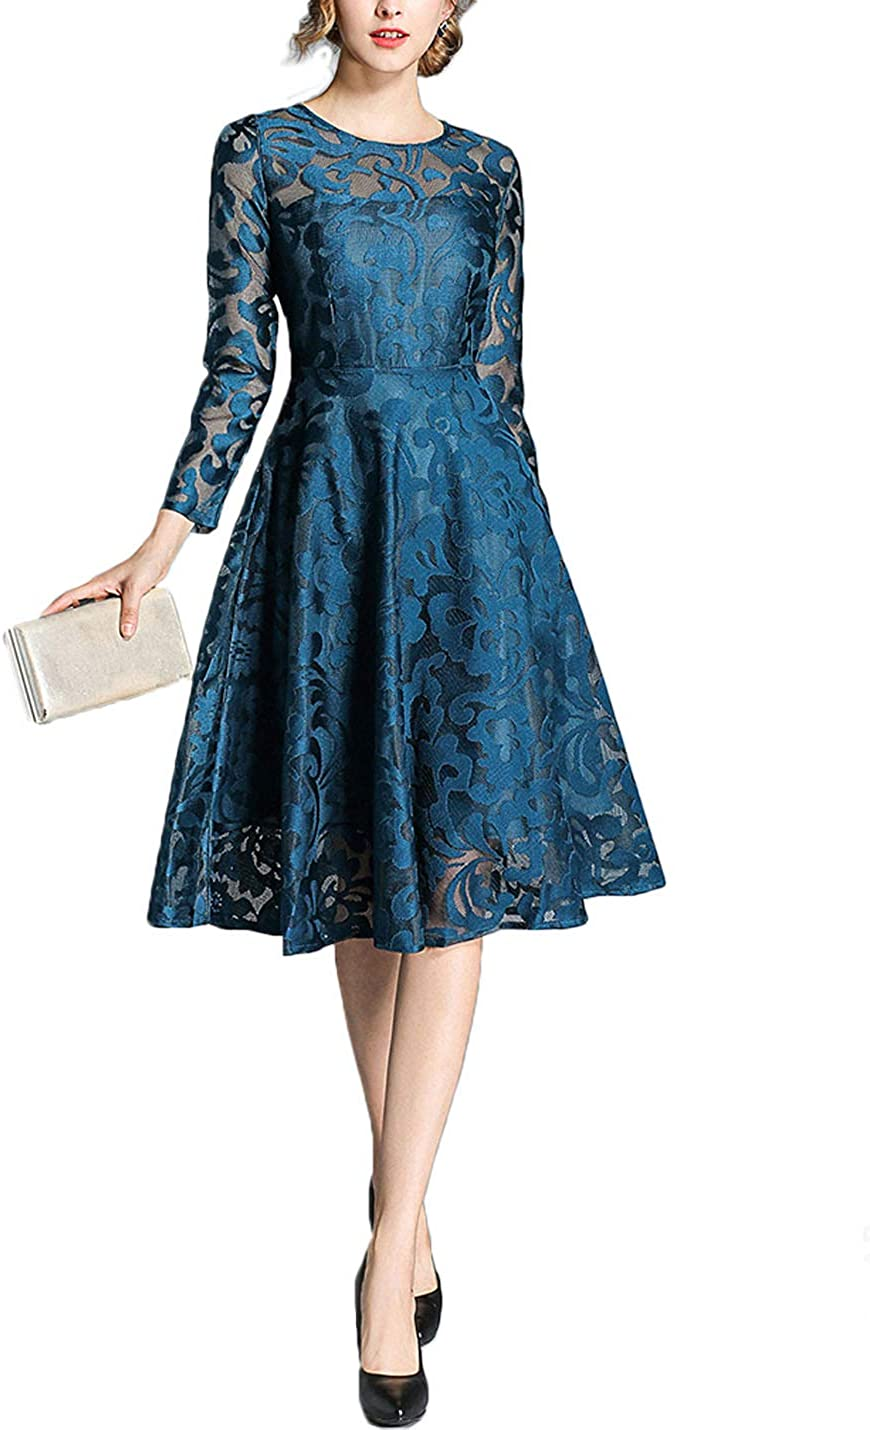 Flygo Women's Vintage Floral Lace Round Neck Long Sleeve Cocktail Party Dress